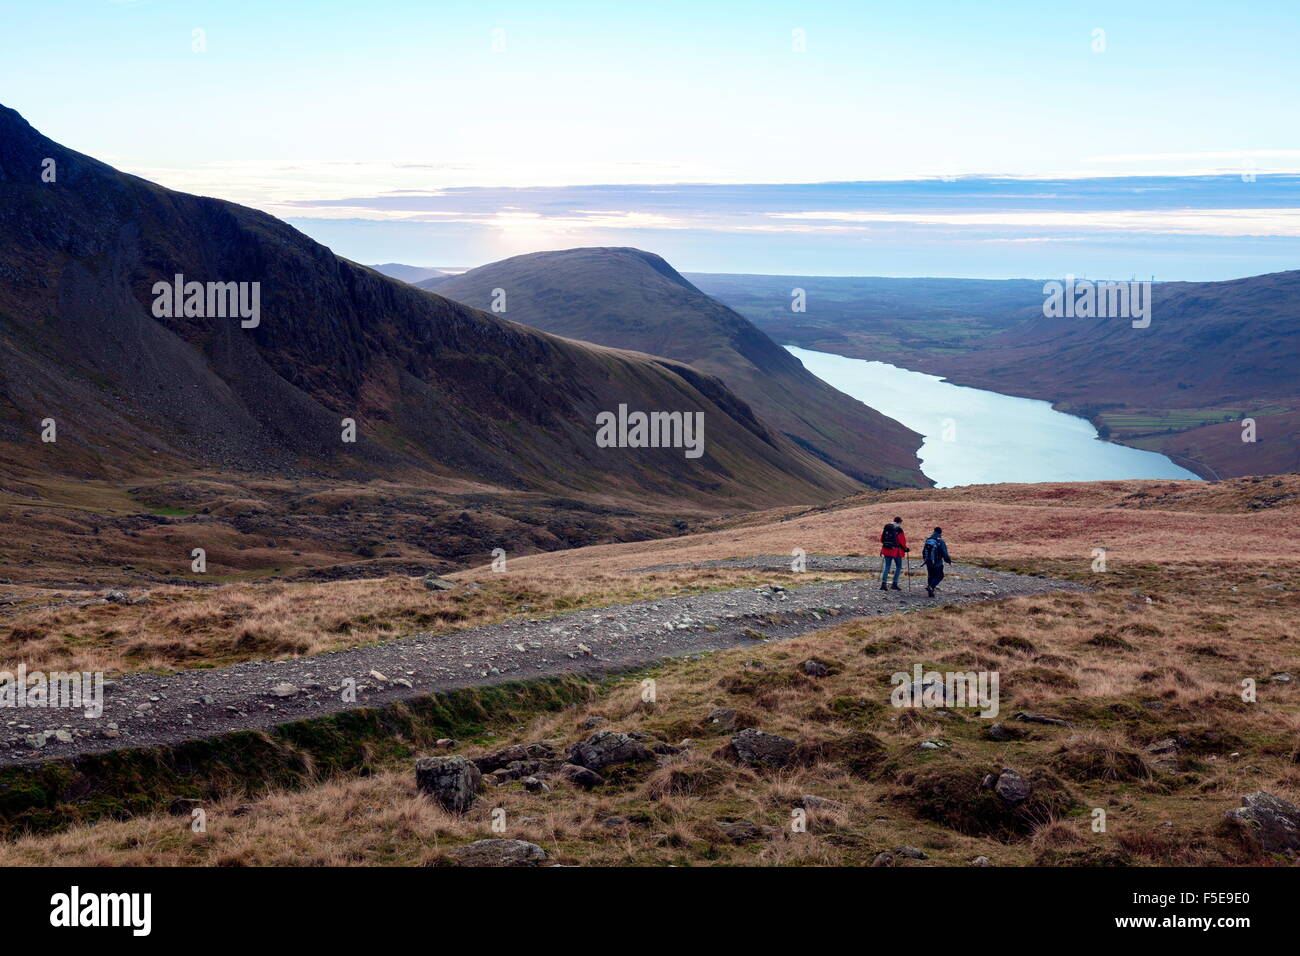 Two men descend from Scafell Pike towards Wast Water, Lake District, Cumbria, England, United Kingdom, Europe - Stock Image